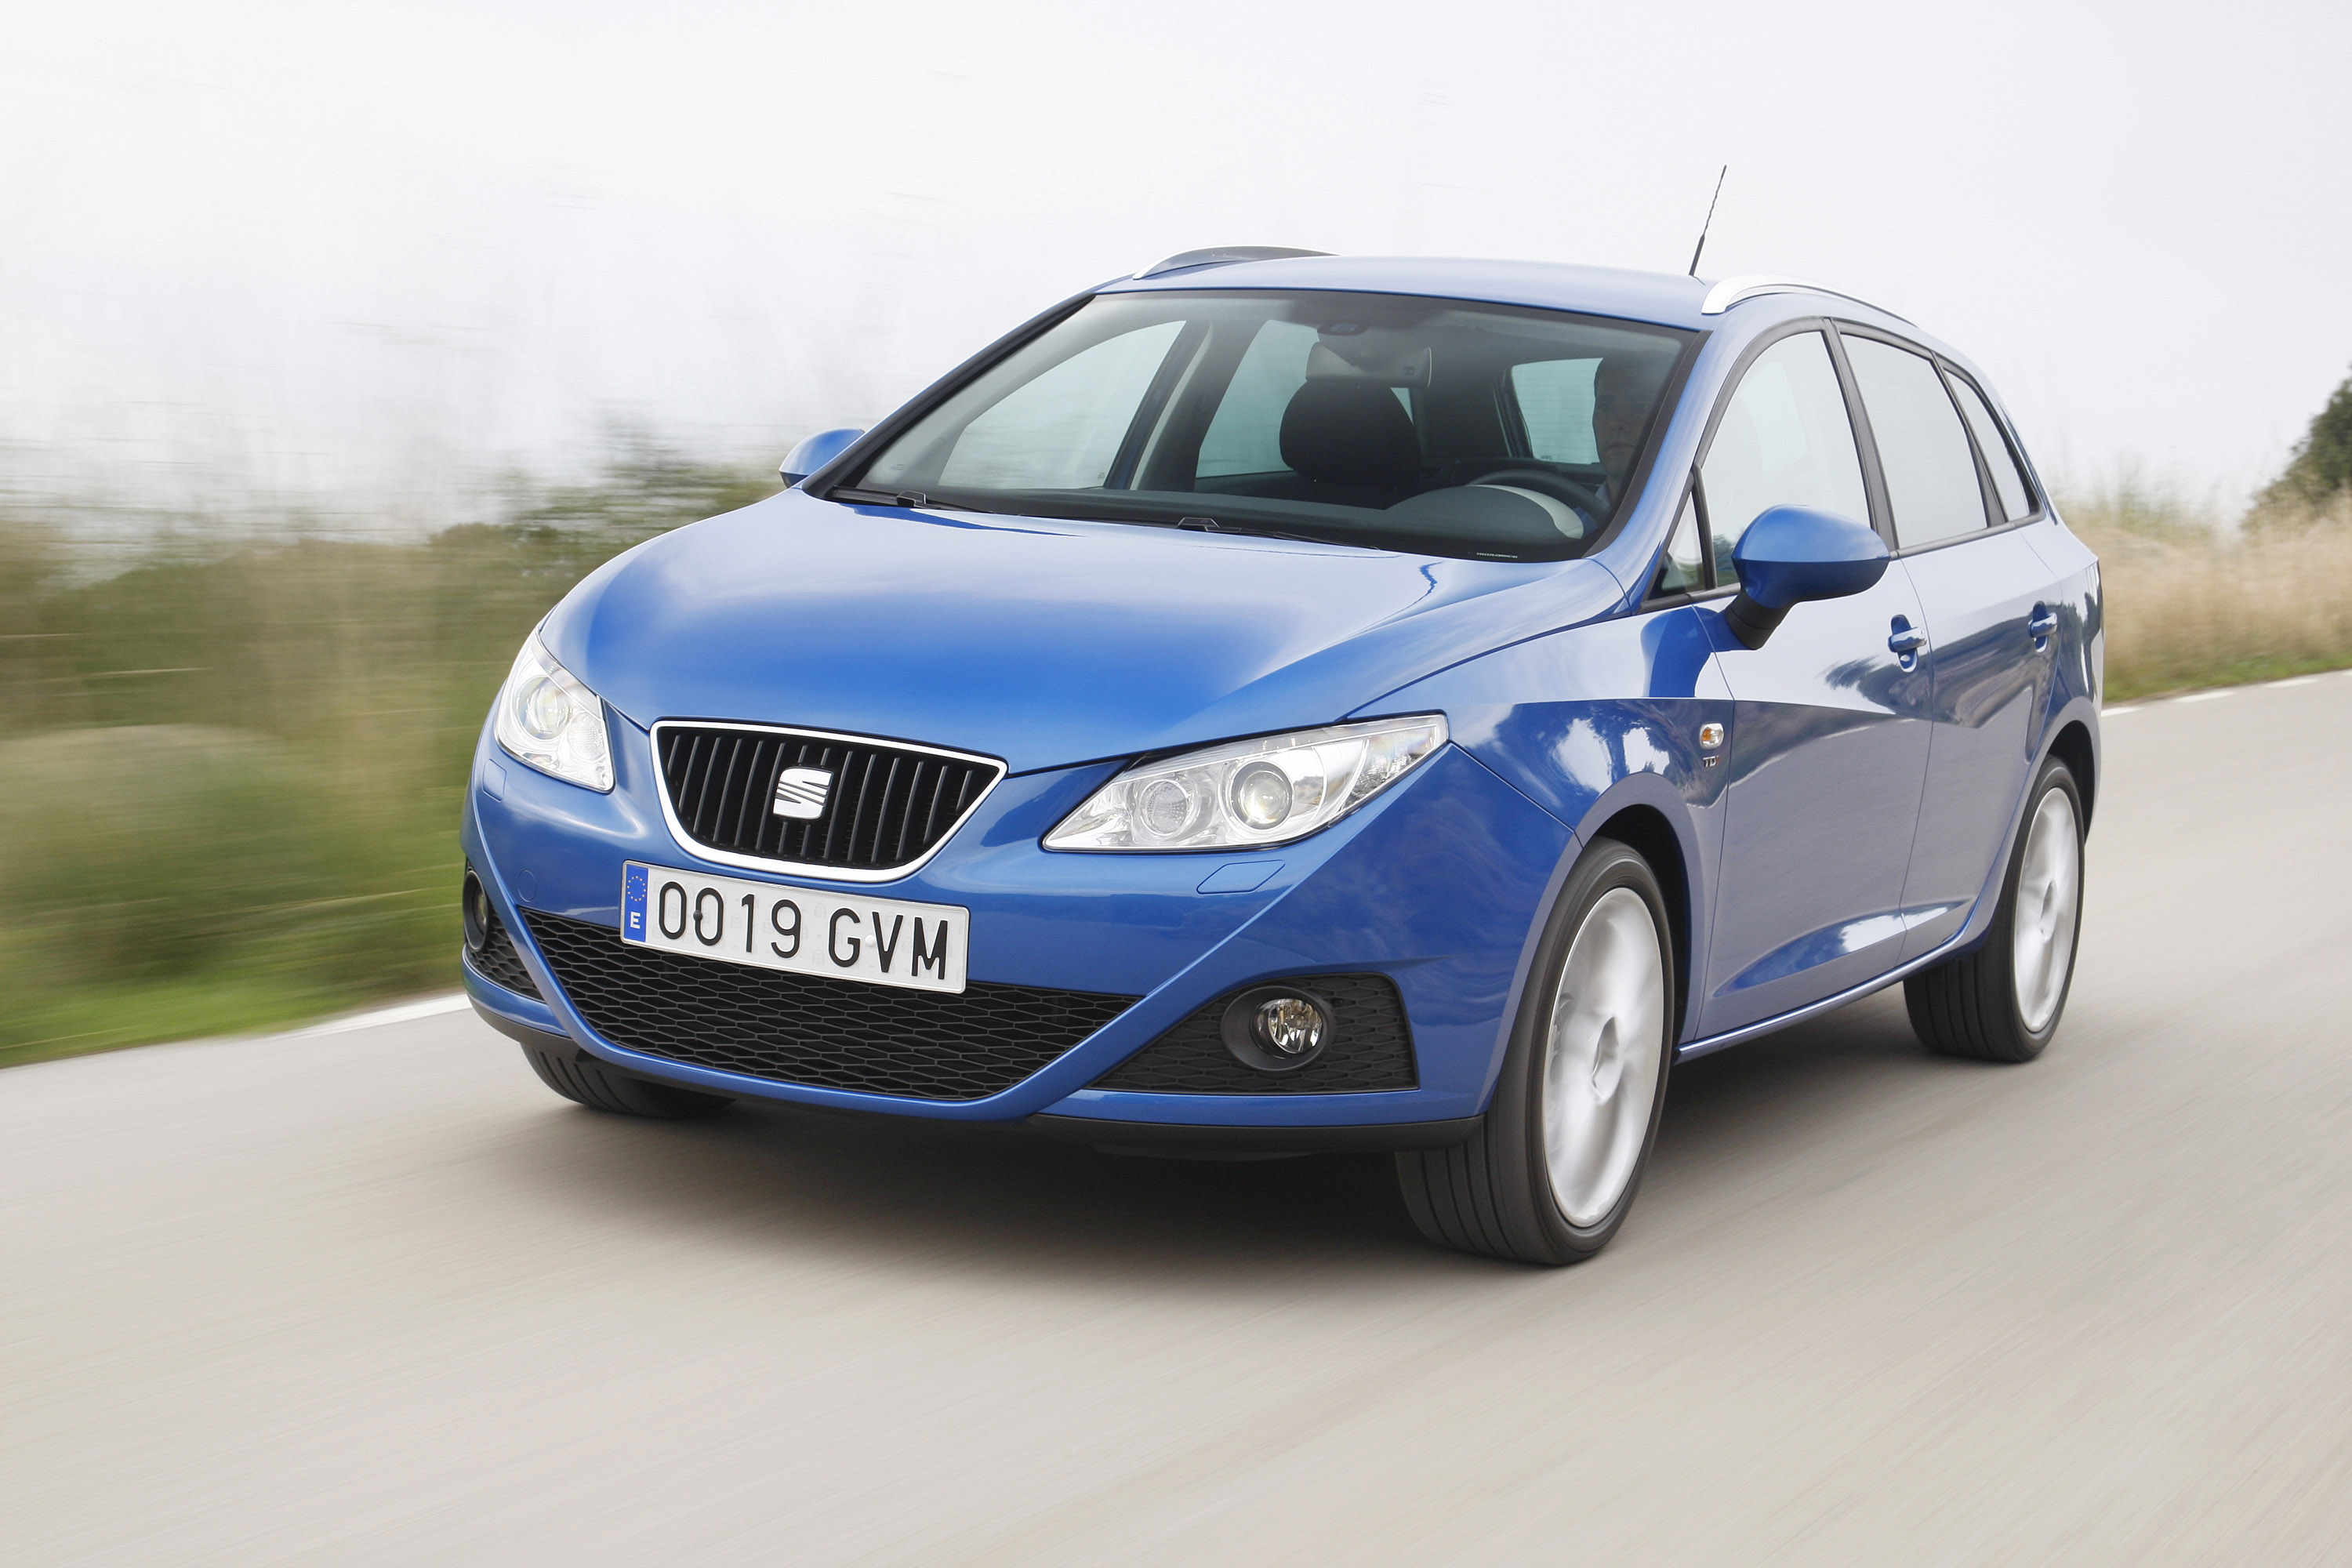 seat ibiza st offers attractive design and practicality. Black Bedroom Furniture Sets. Home Design Ideas